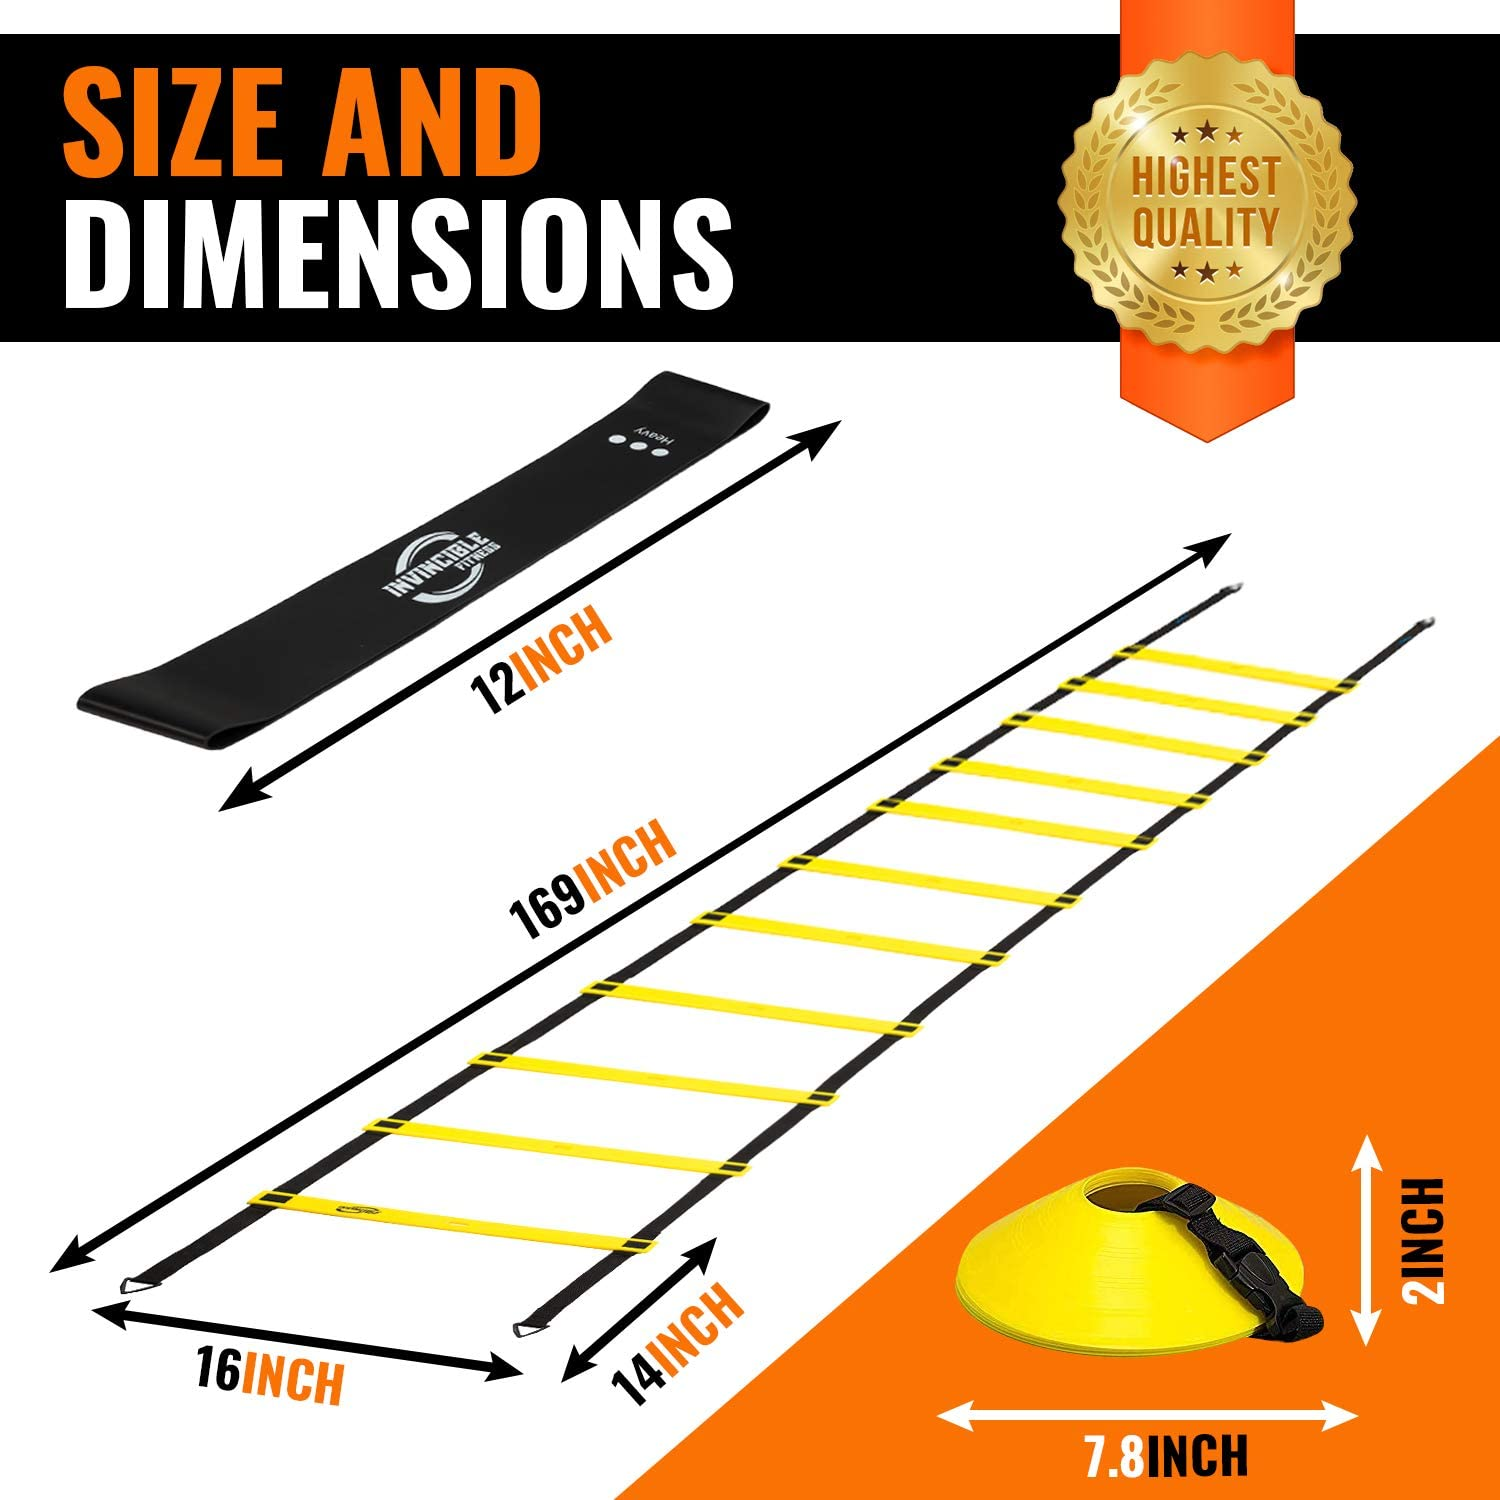 Invincible Fitness Agility Ladder Training Equipment Set, Improves Coordination, Speed, Power and Strength, Includes 10 Cones, 4 Hooks and 3 Loop Resistance Bands for Outdoor Workout : Sports & Outdoors